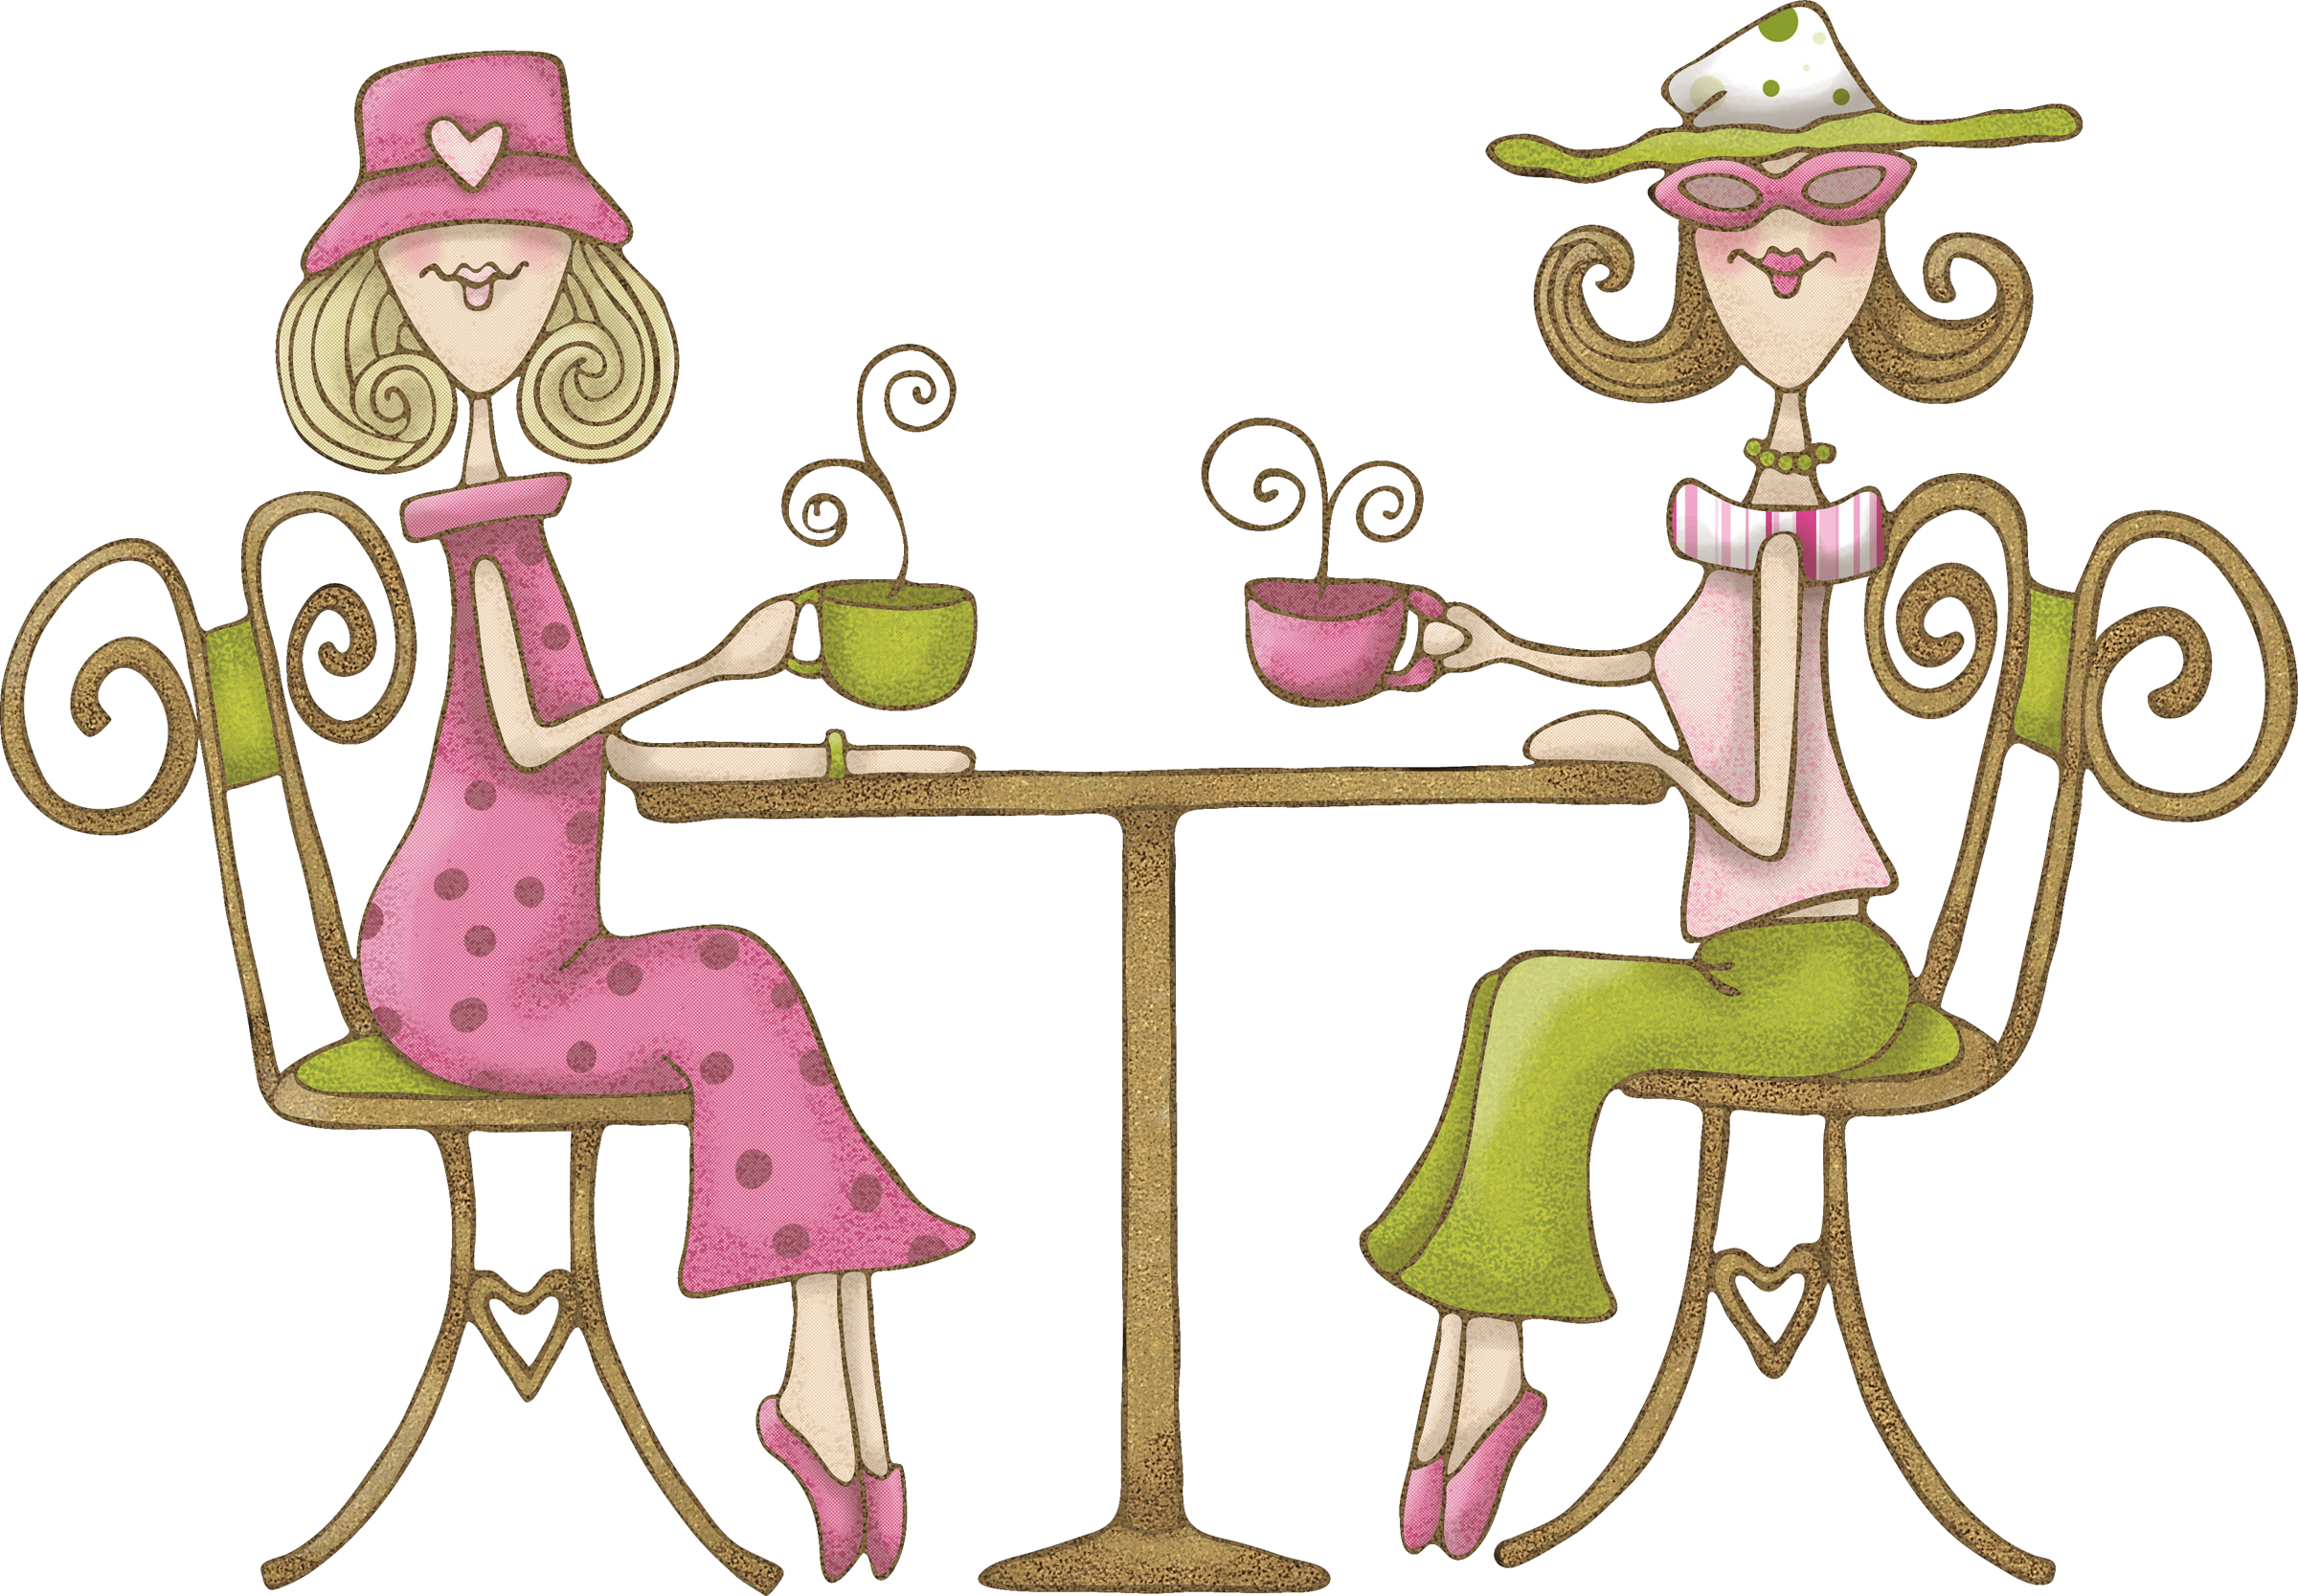 Women tuesday club results. Golfing clipart lady